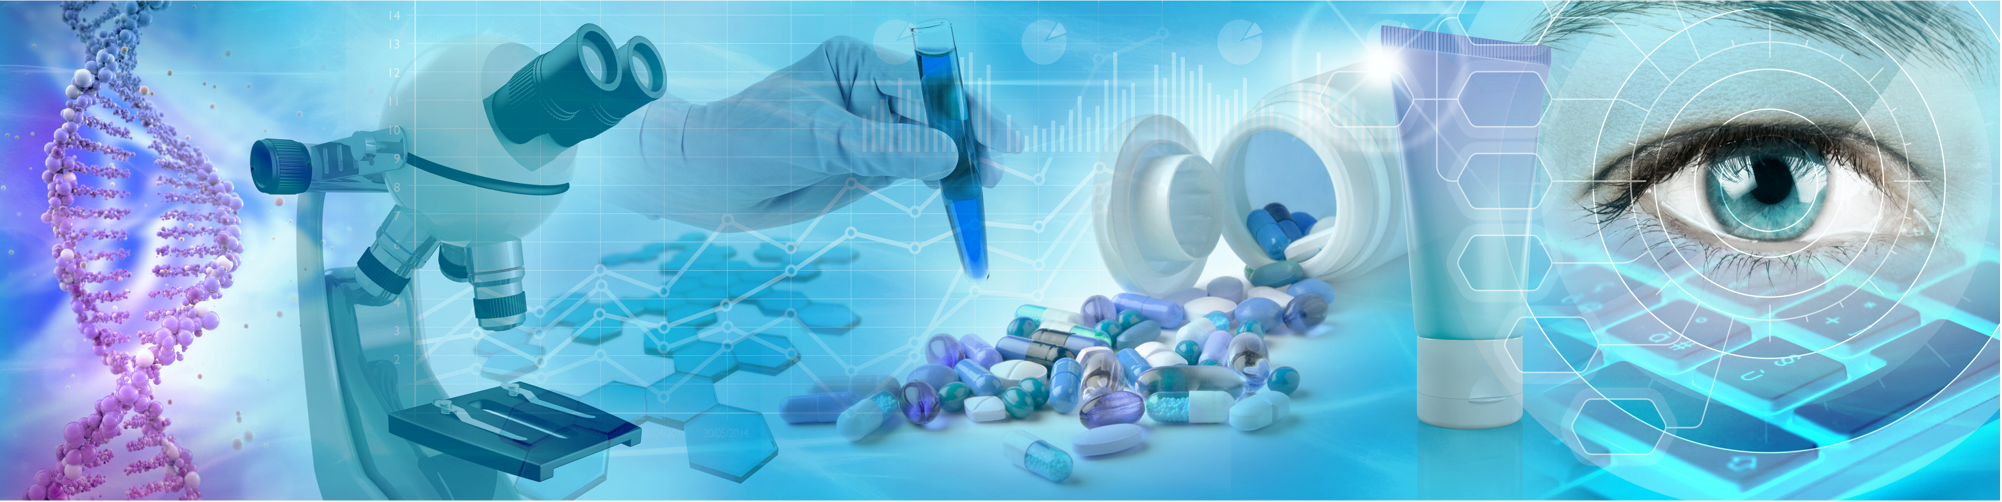 pharmaceuticals and life sciences banner industry image